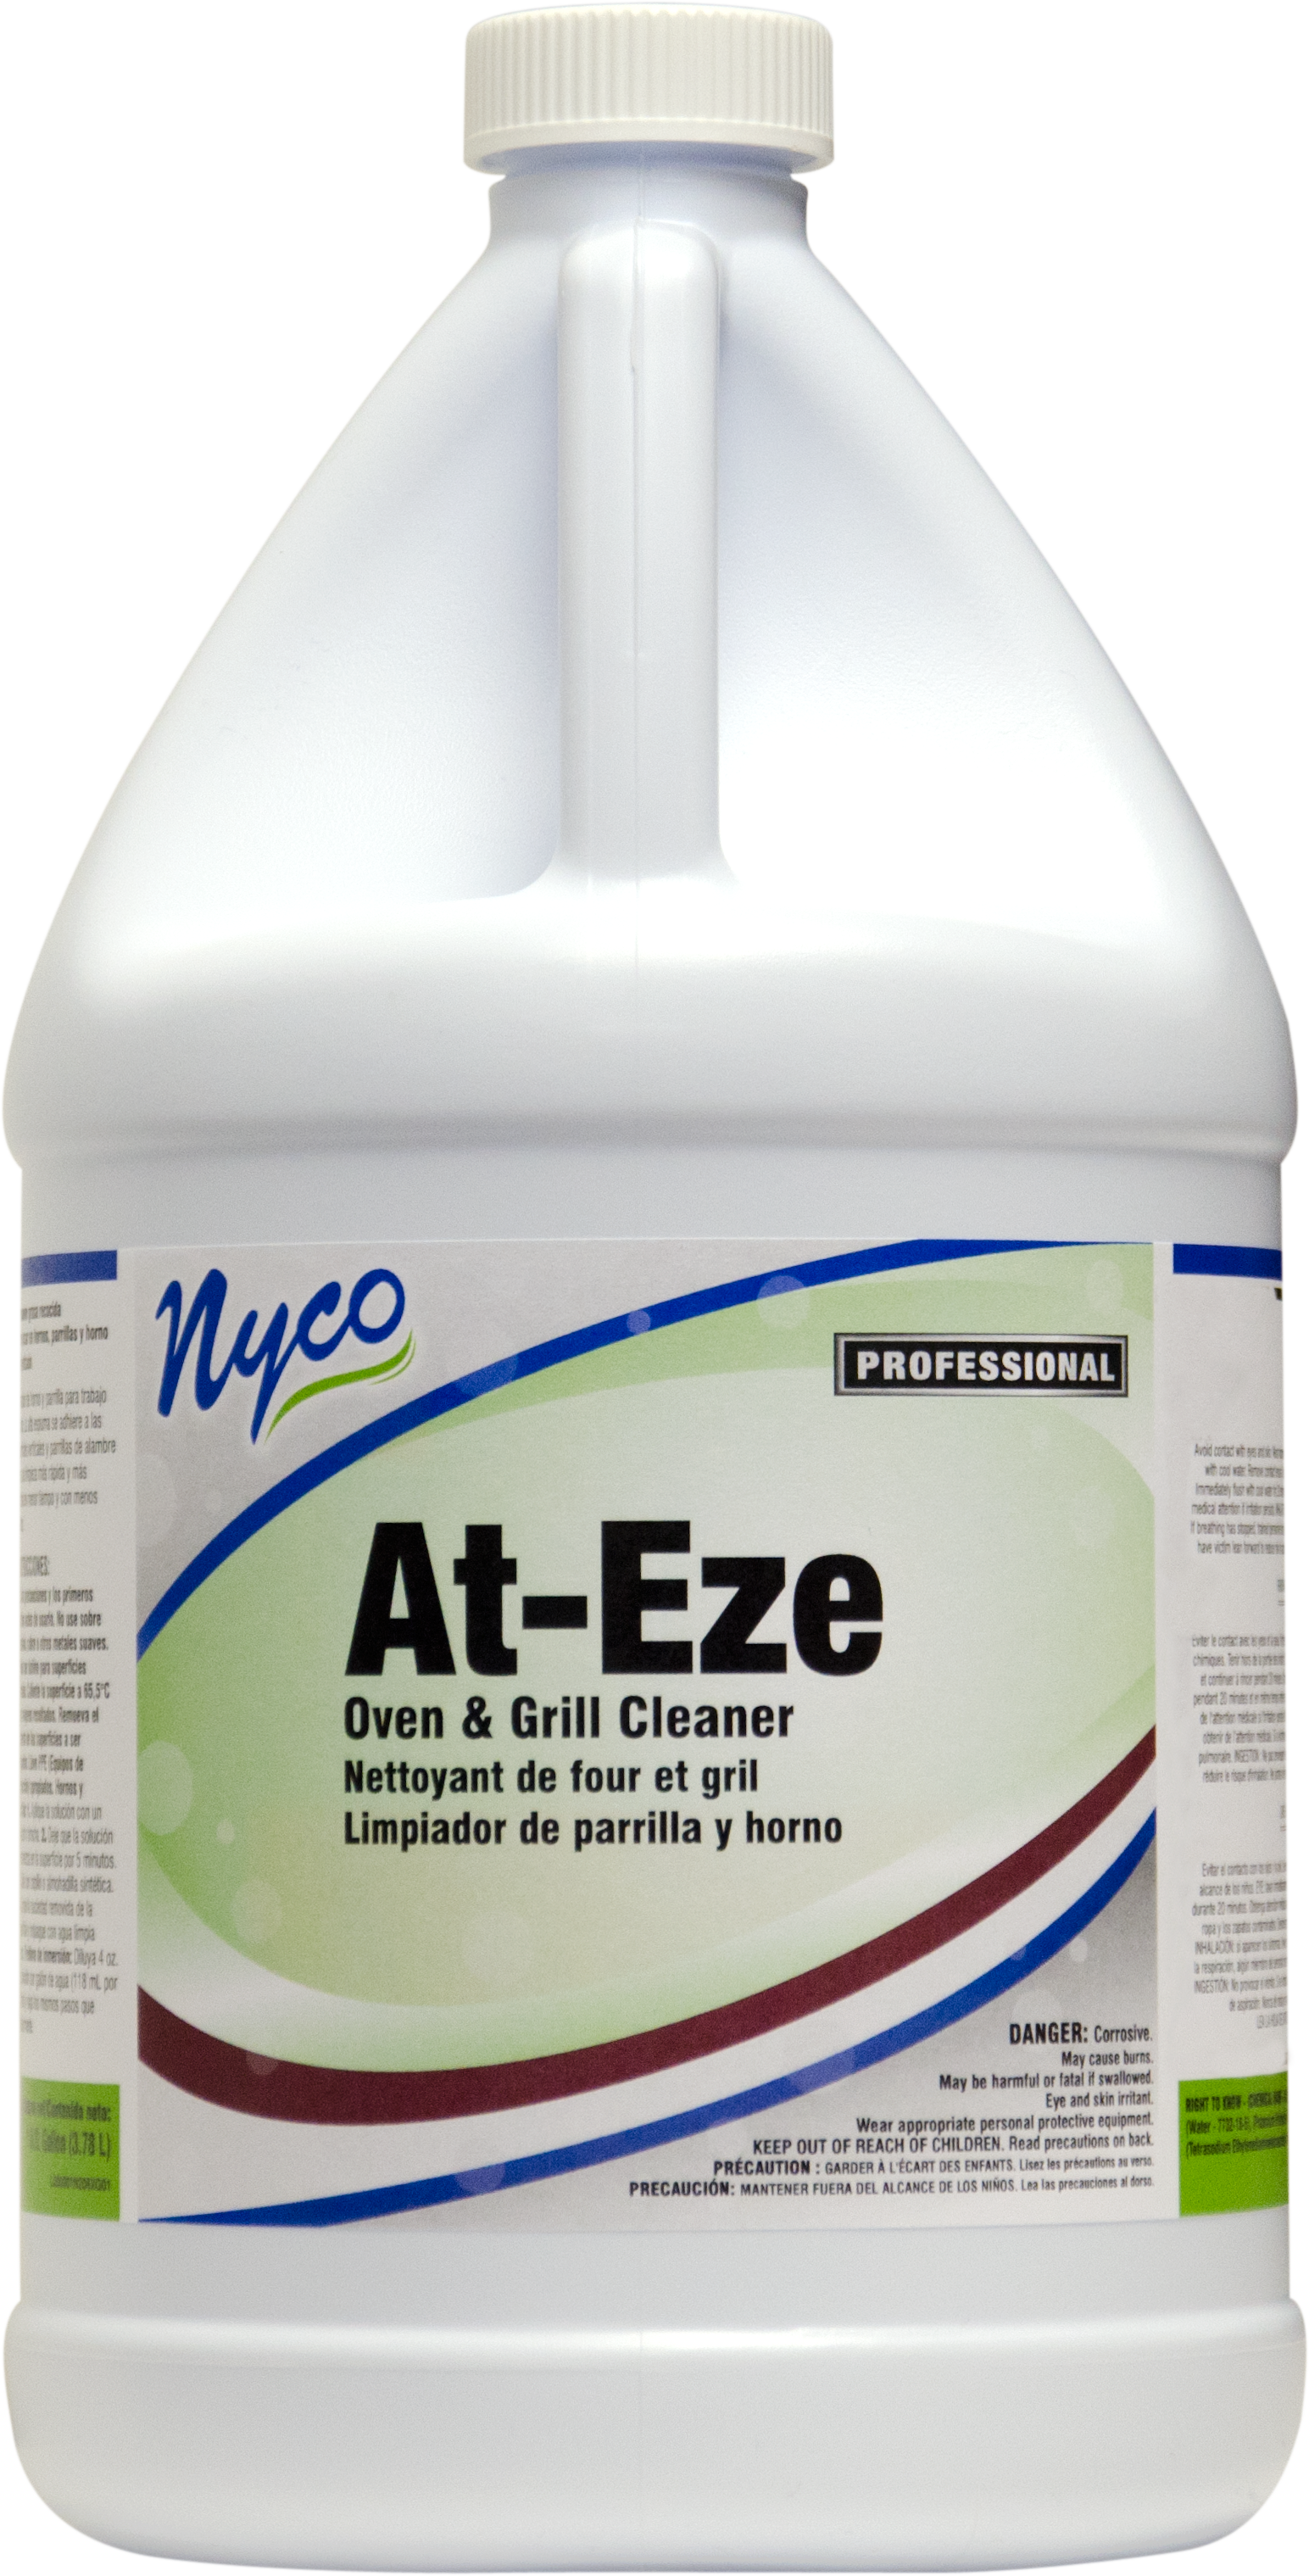 Nyco NL206-G4 at-eze professional oven & grill cleaner